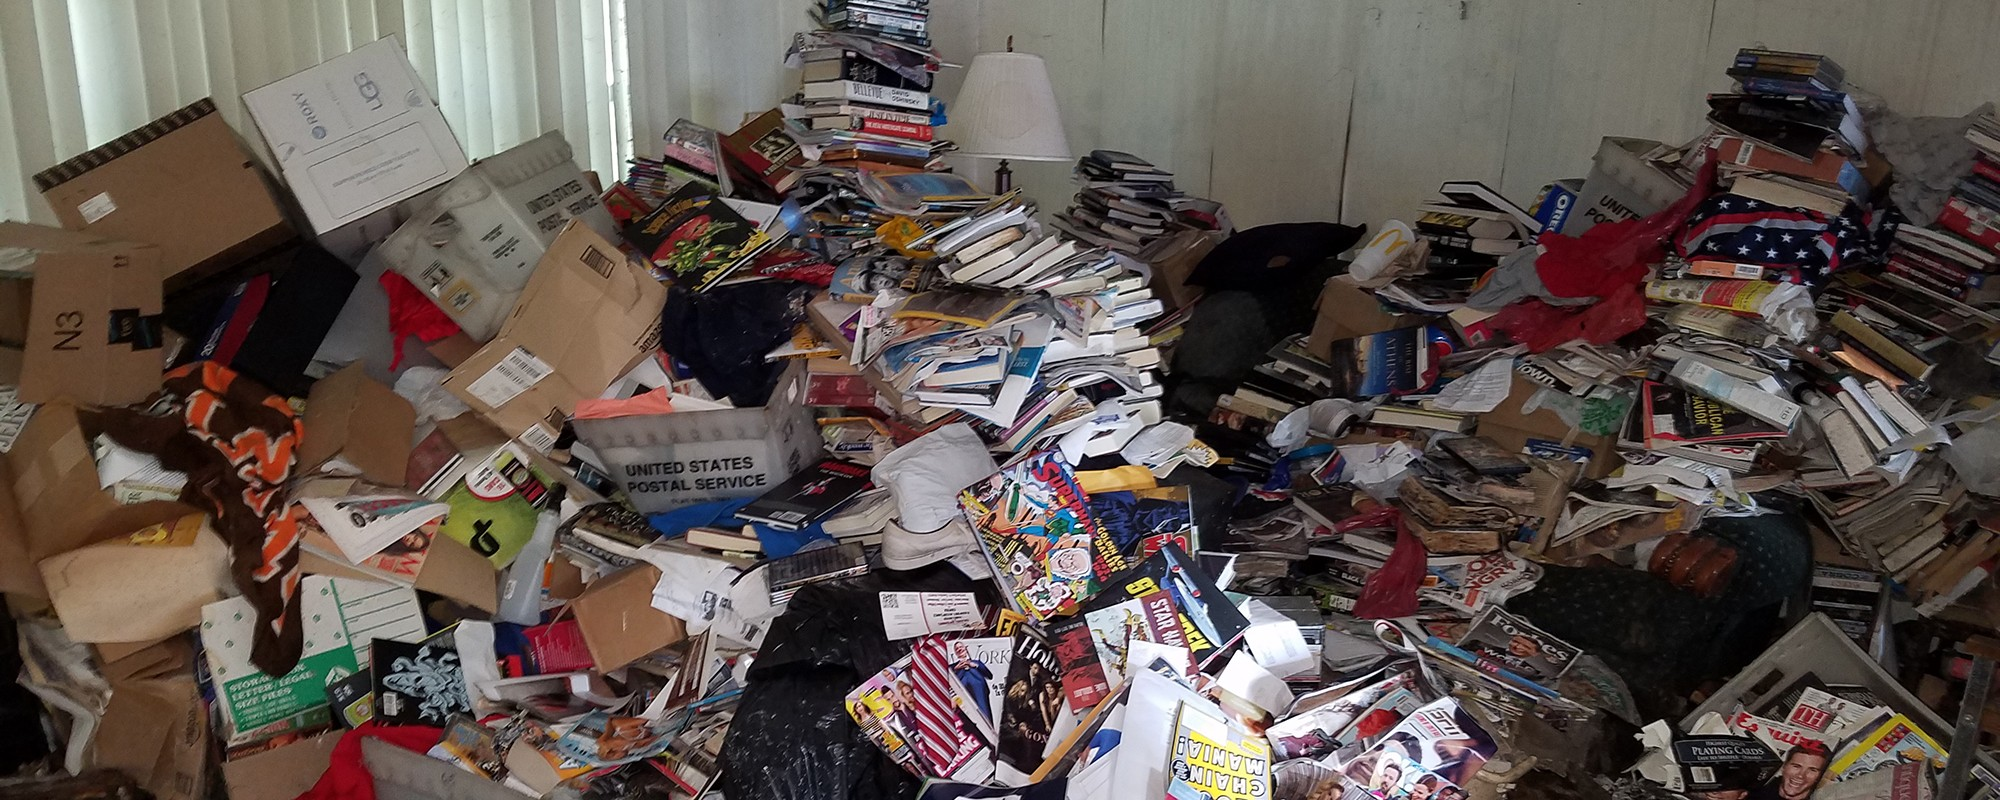 hoarding-cleanup-junk-removal-nj